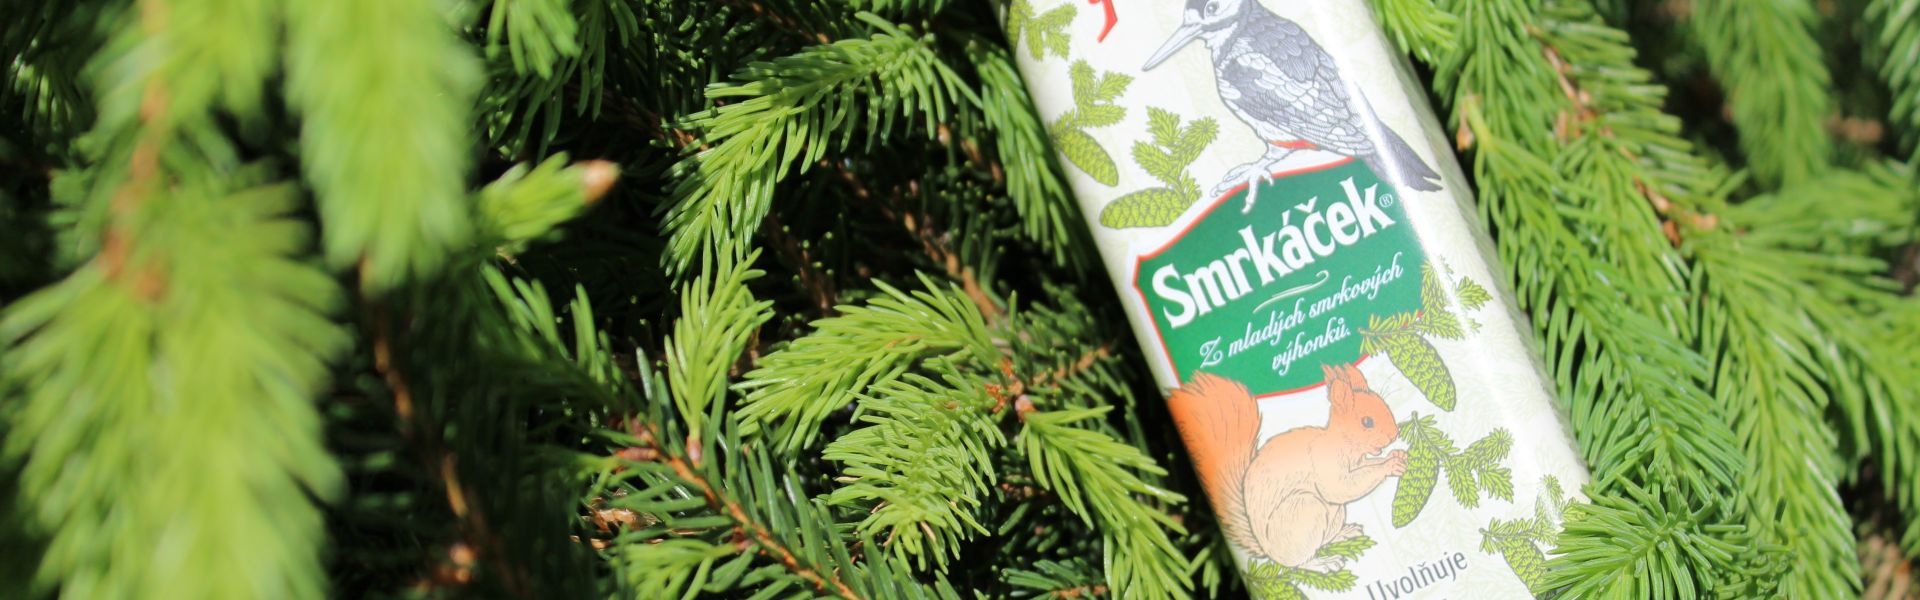 Kitl Spruce Organic - Relaxes the nose!